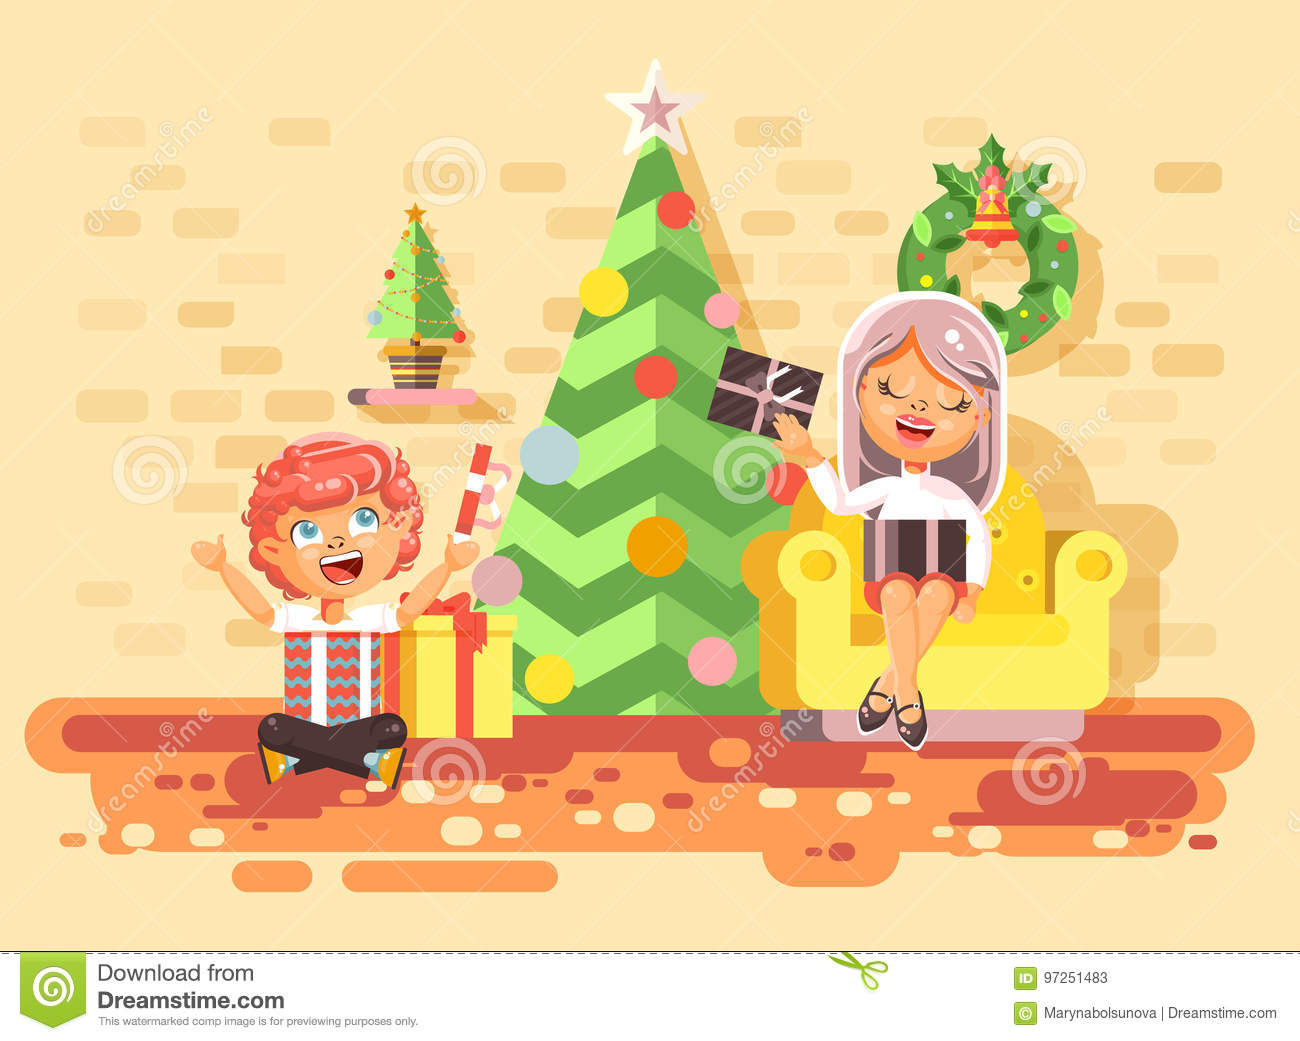 stock vector illustration cartoon characters children boys and girls in room under christmas tree happy new year and christmas give gifts